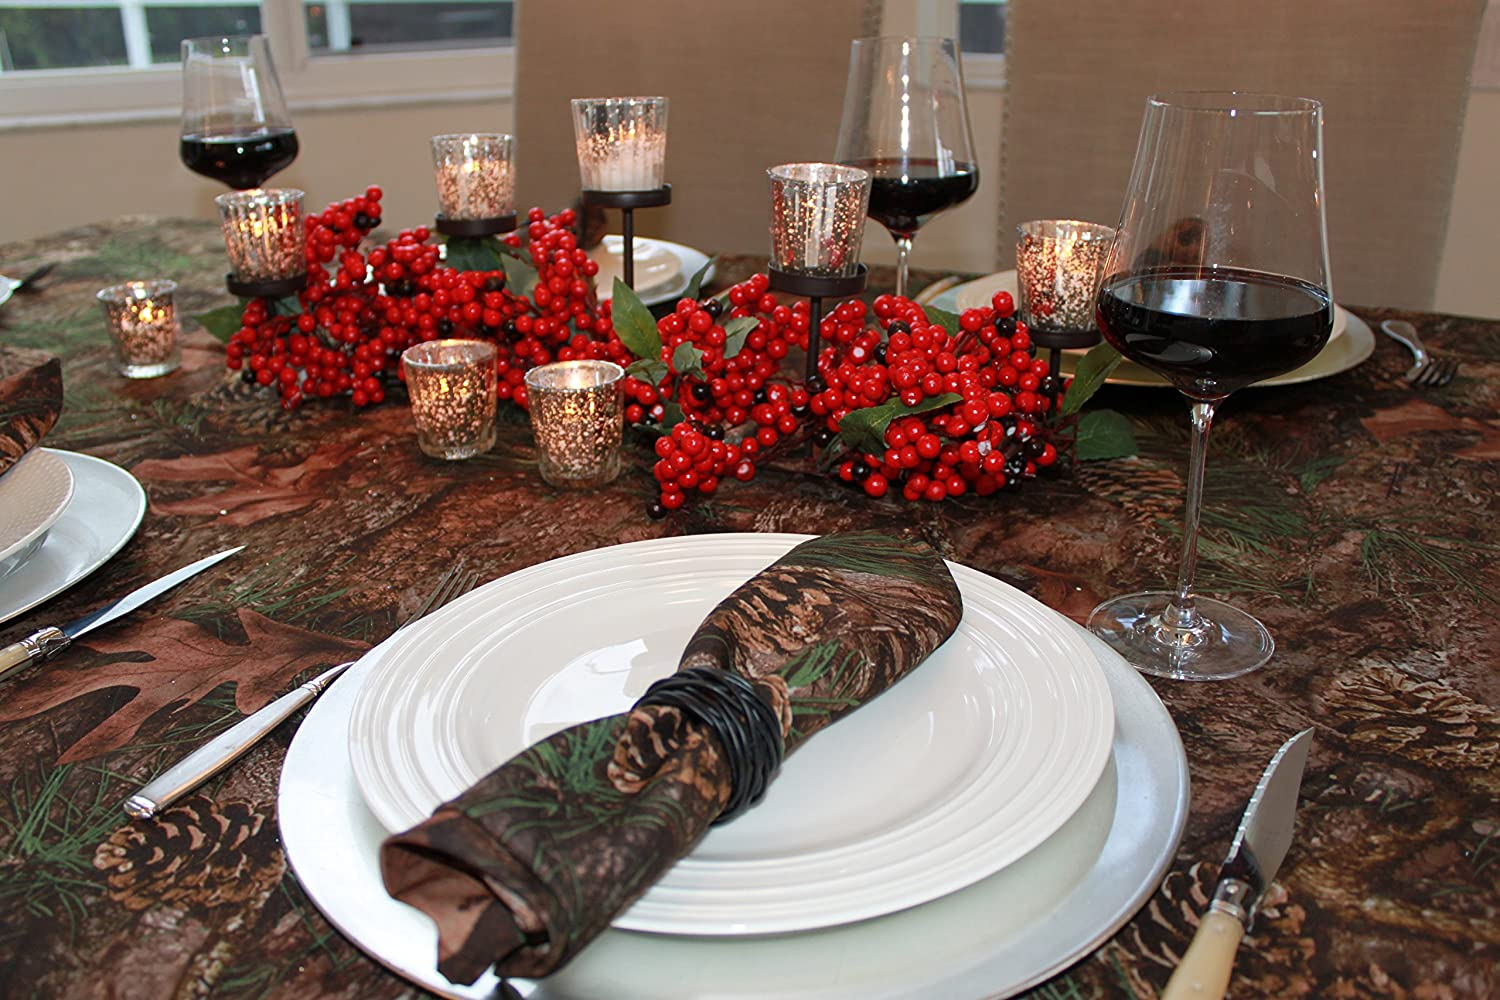 Celebration Tablecloths 70 x 84 Inch Mixed Pine True Timber Christmas Tablecloth Restaurant Quality Fabric Machine Wash and Dry No Wrinkles No Iron No Stains Cabin Decor Fall Holiday Thanksg